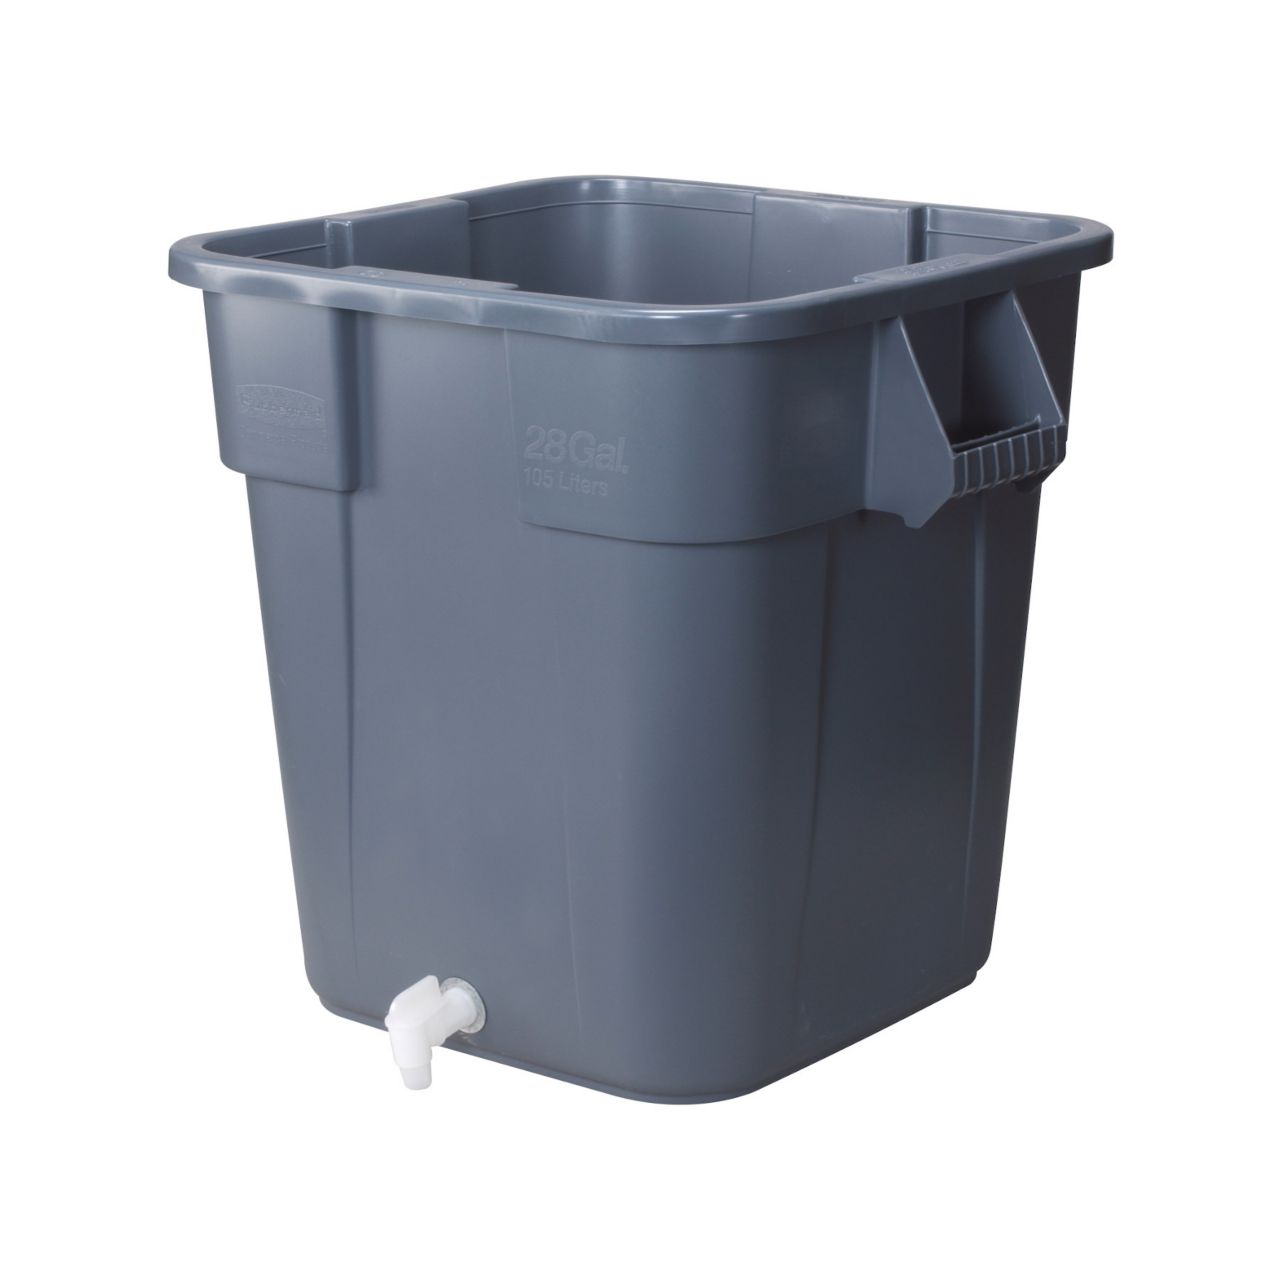 HS_honeywell__eyewash_waste_container_32_001061_0000